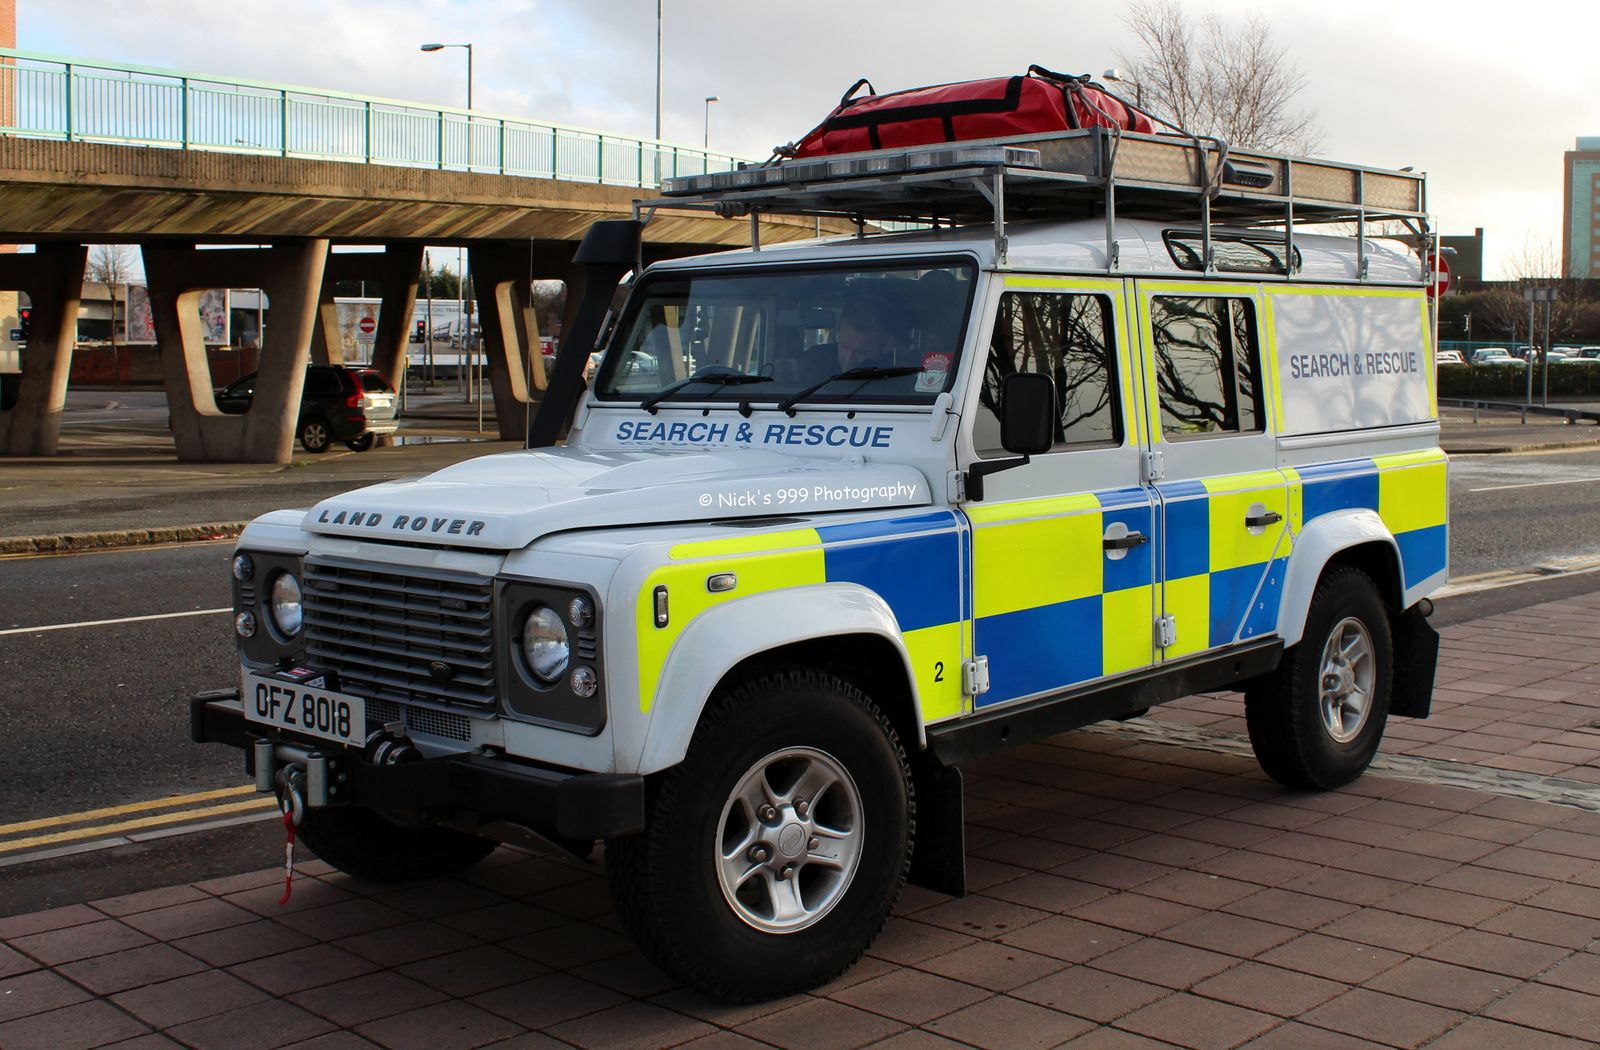 Pin on Land Rover Series / Defender